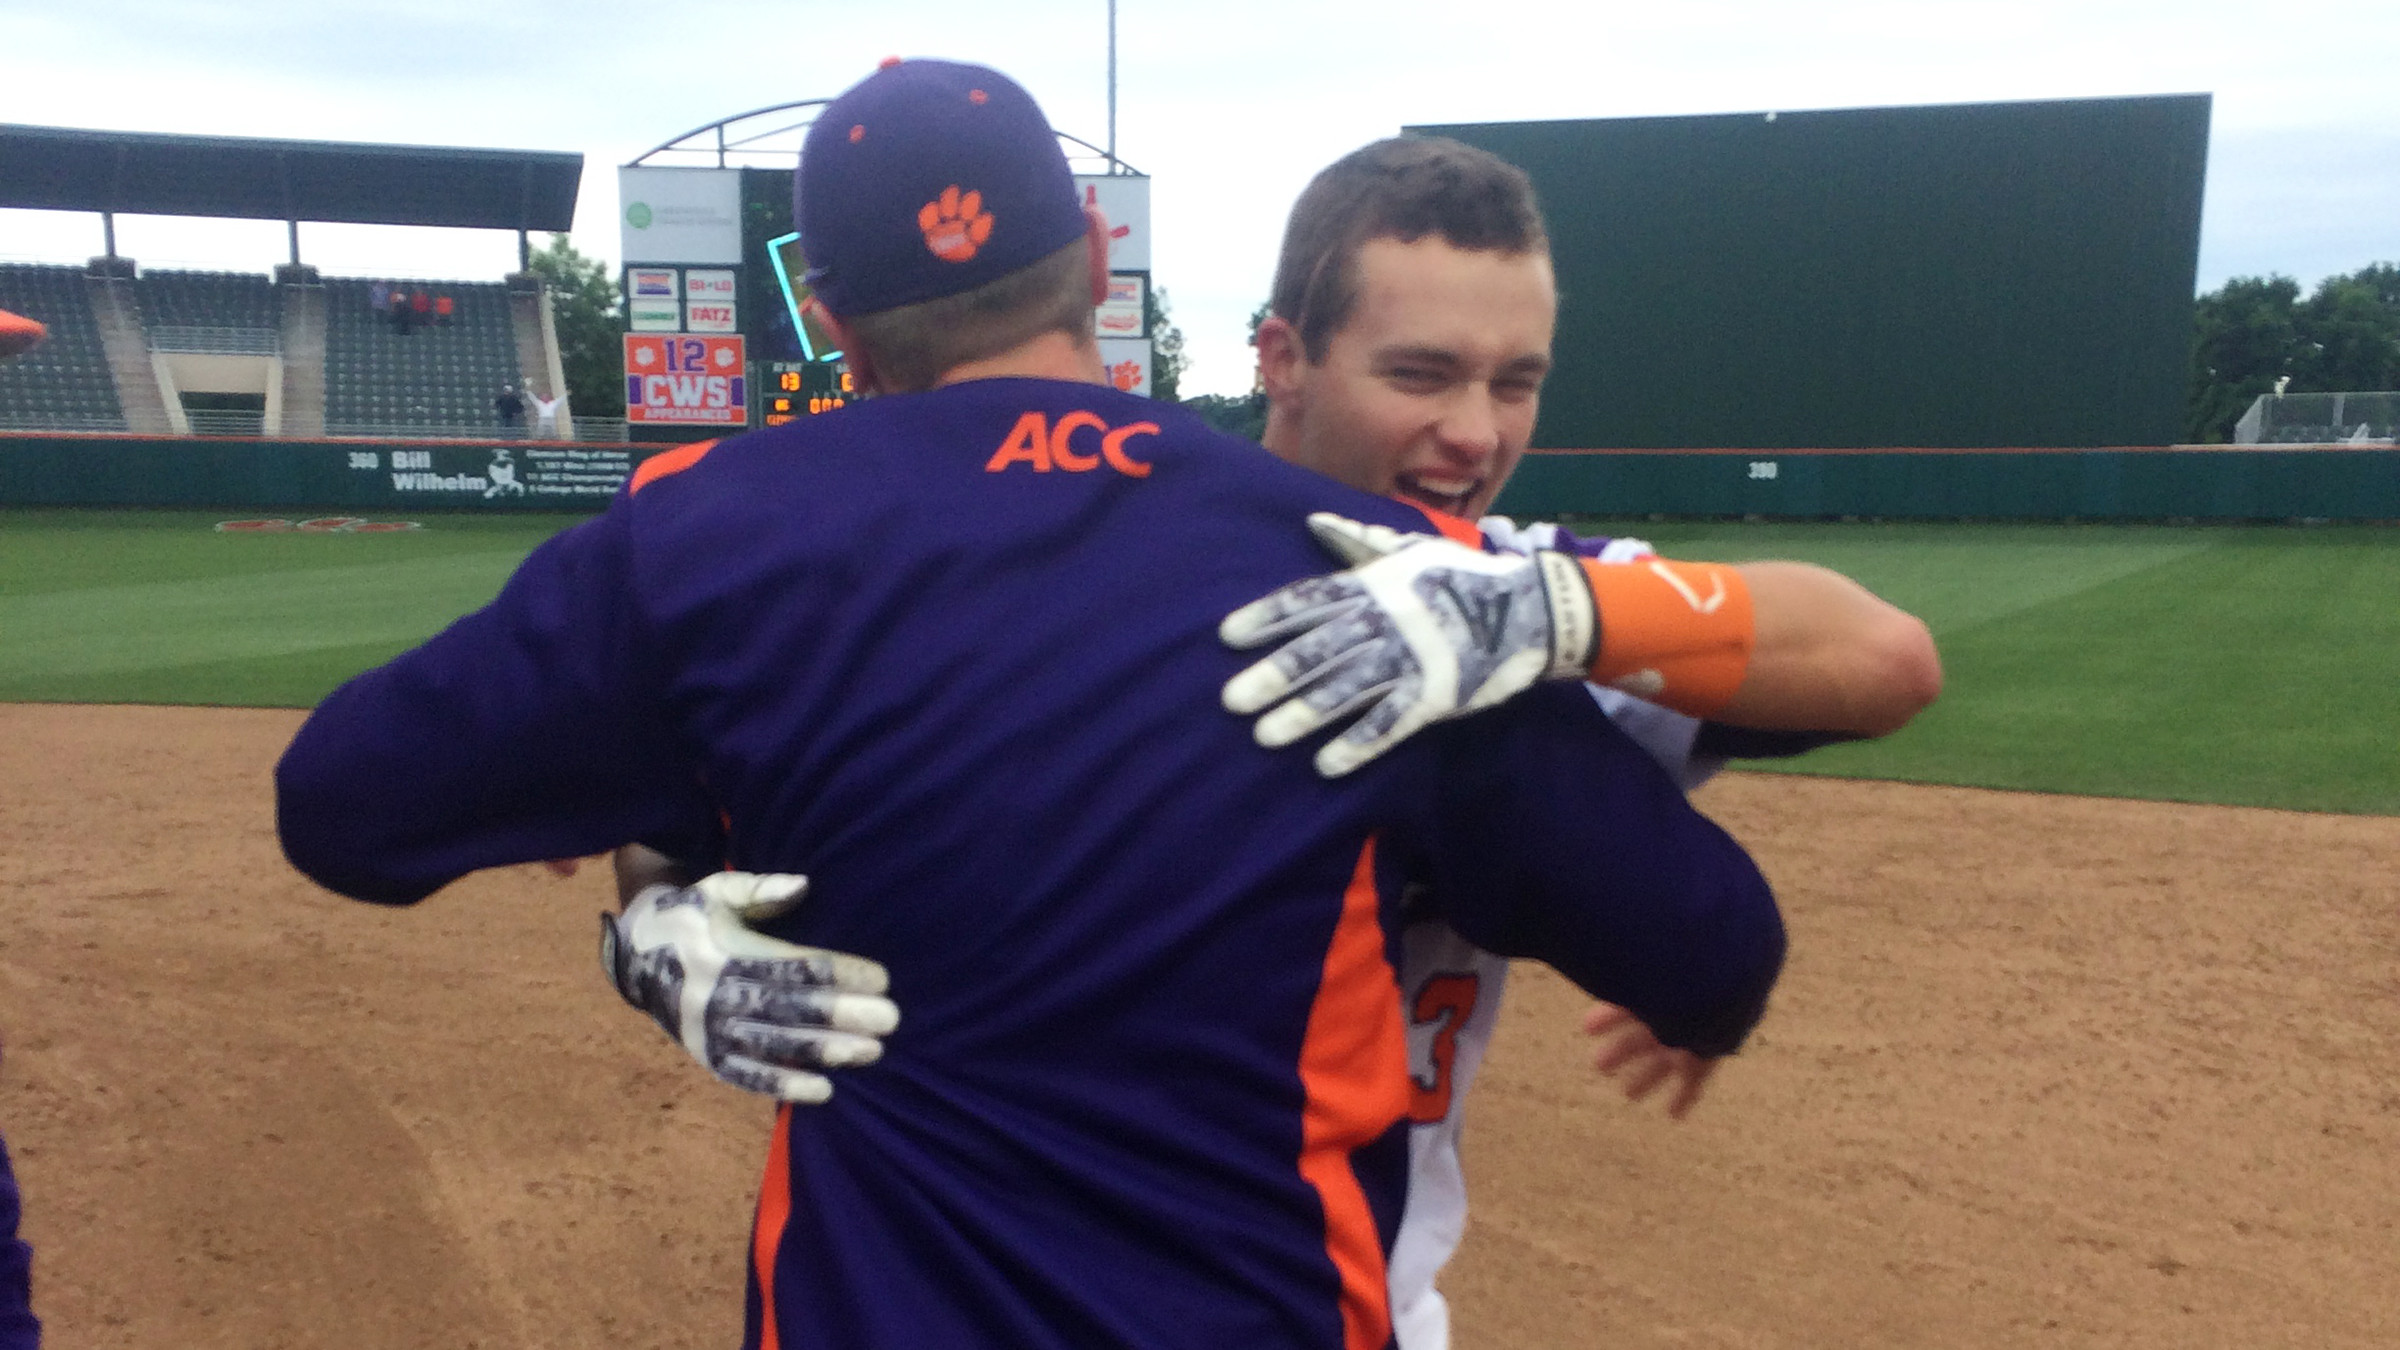 Tigers Walk Off With 10-9 Win Over Eagles in 13 Innings Saturday